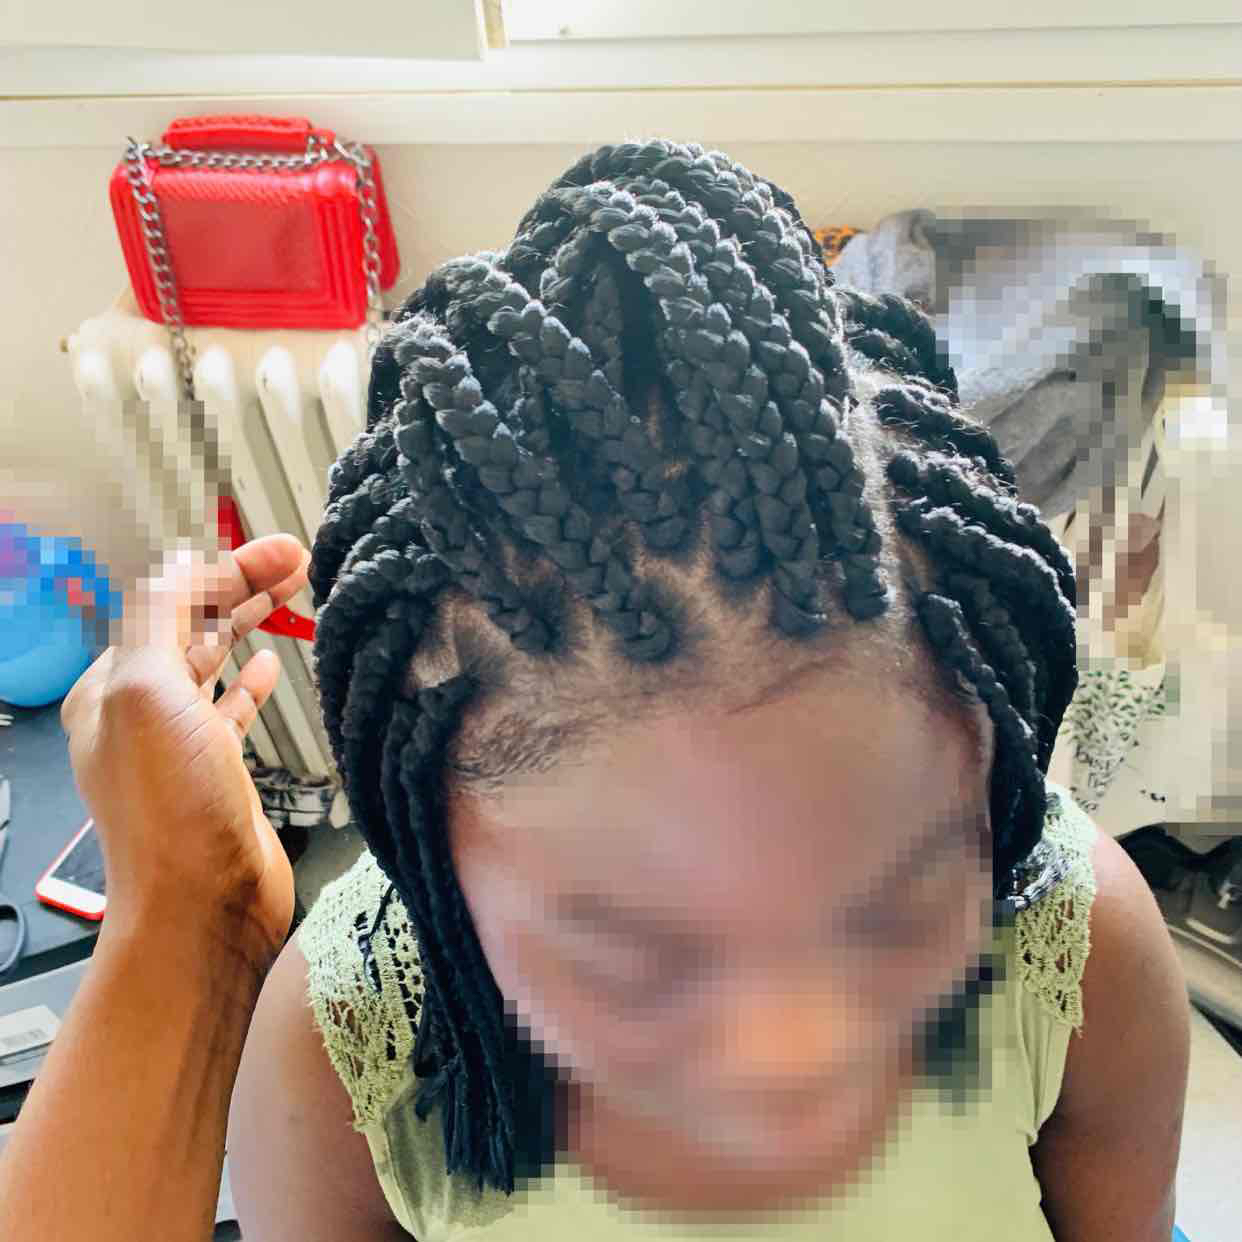 salon de coiffure afro tresse tresses box braids crochet braids vanilles tissages paris 75 77 78 91 92 93 94 95 ILYGHFLL